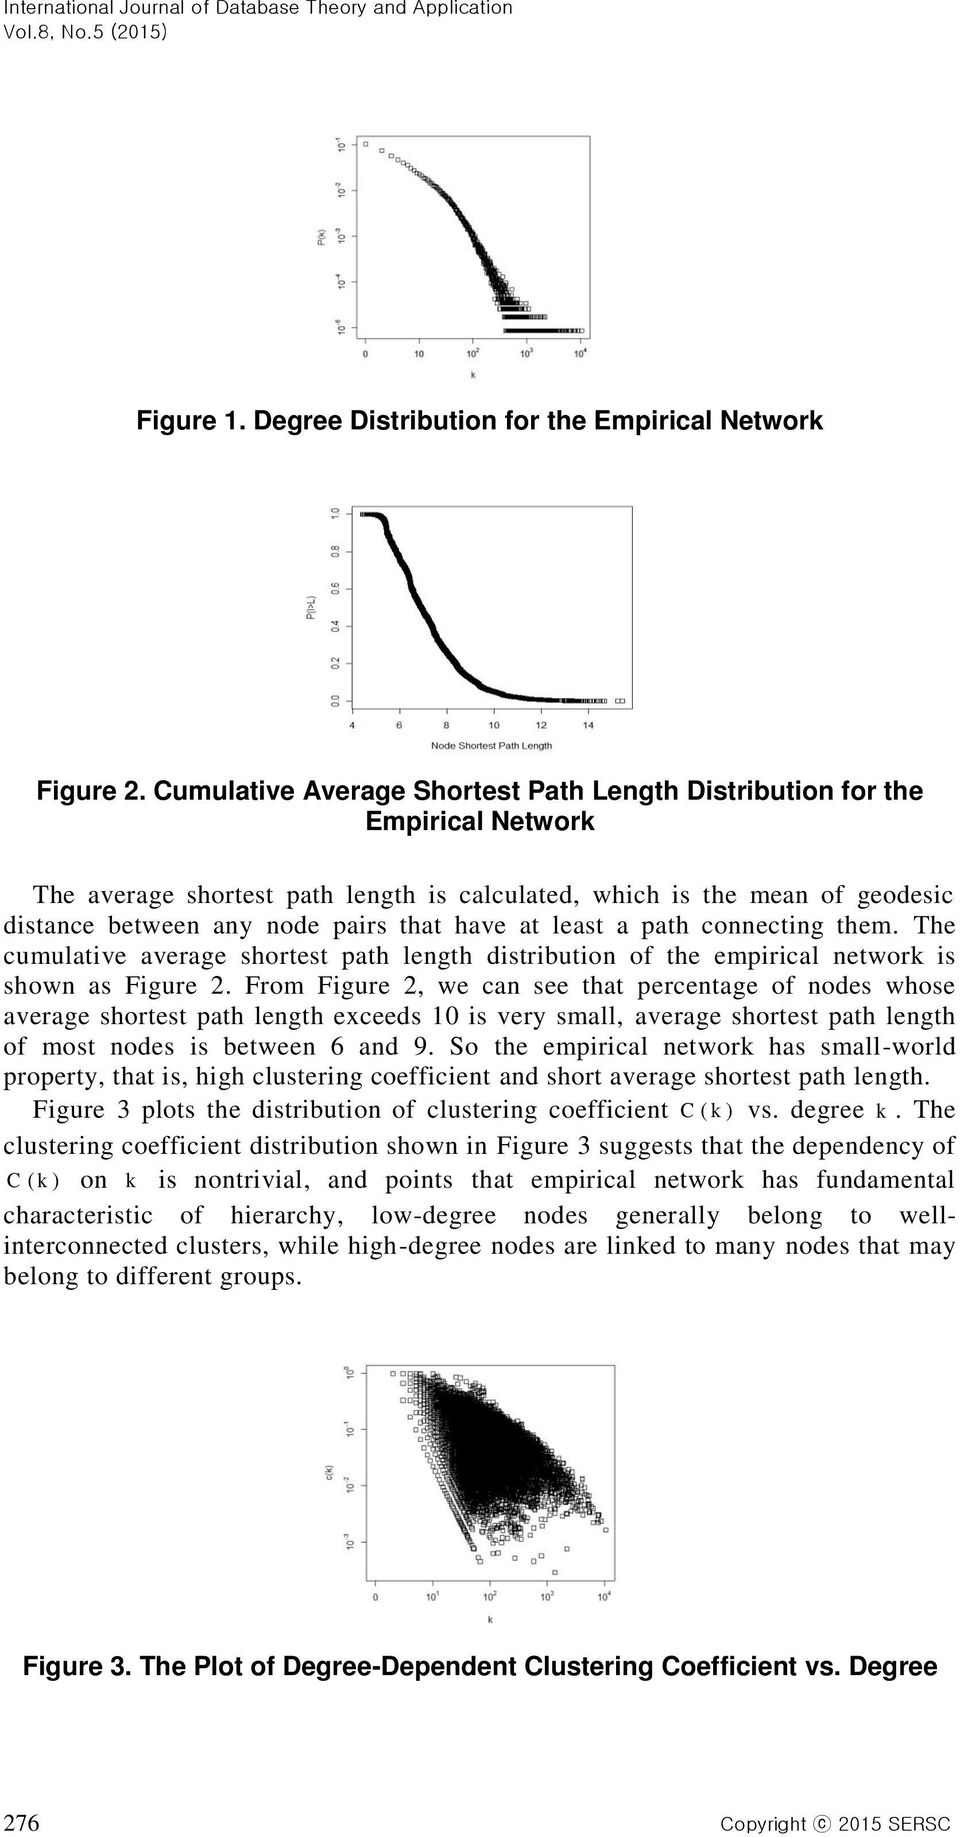 at least a path connecting them. The cumulative average shortest path length distribution of the empirical network is shown as Figure 2.